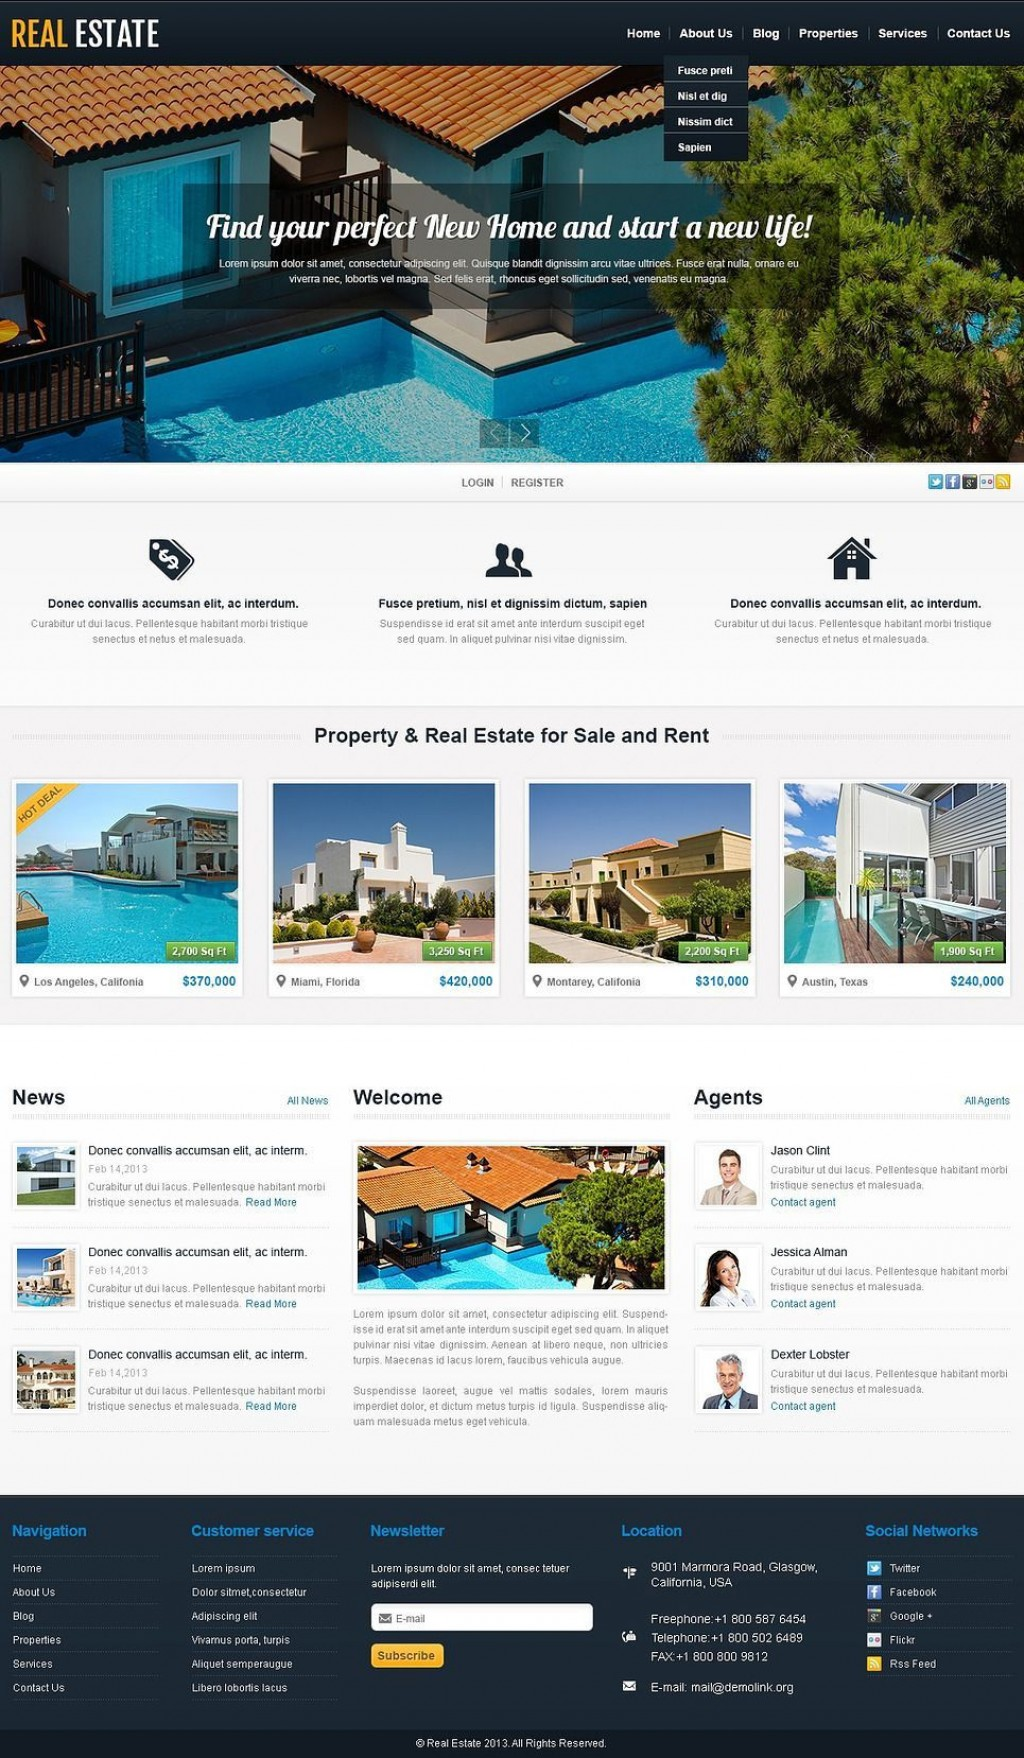 000 Exceptional Real Estate Template Wordpres High Resolution  Homepres - Theme Free Download RealtyspaceLarge